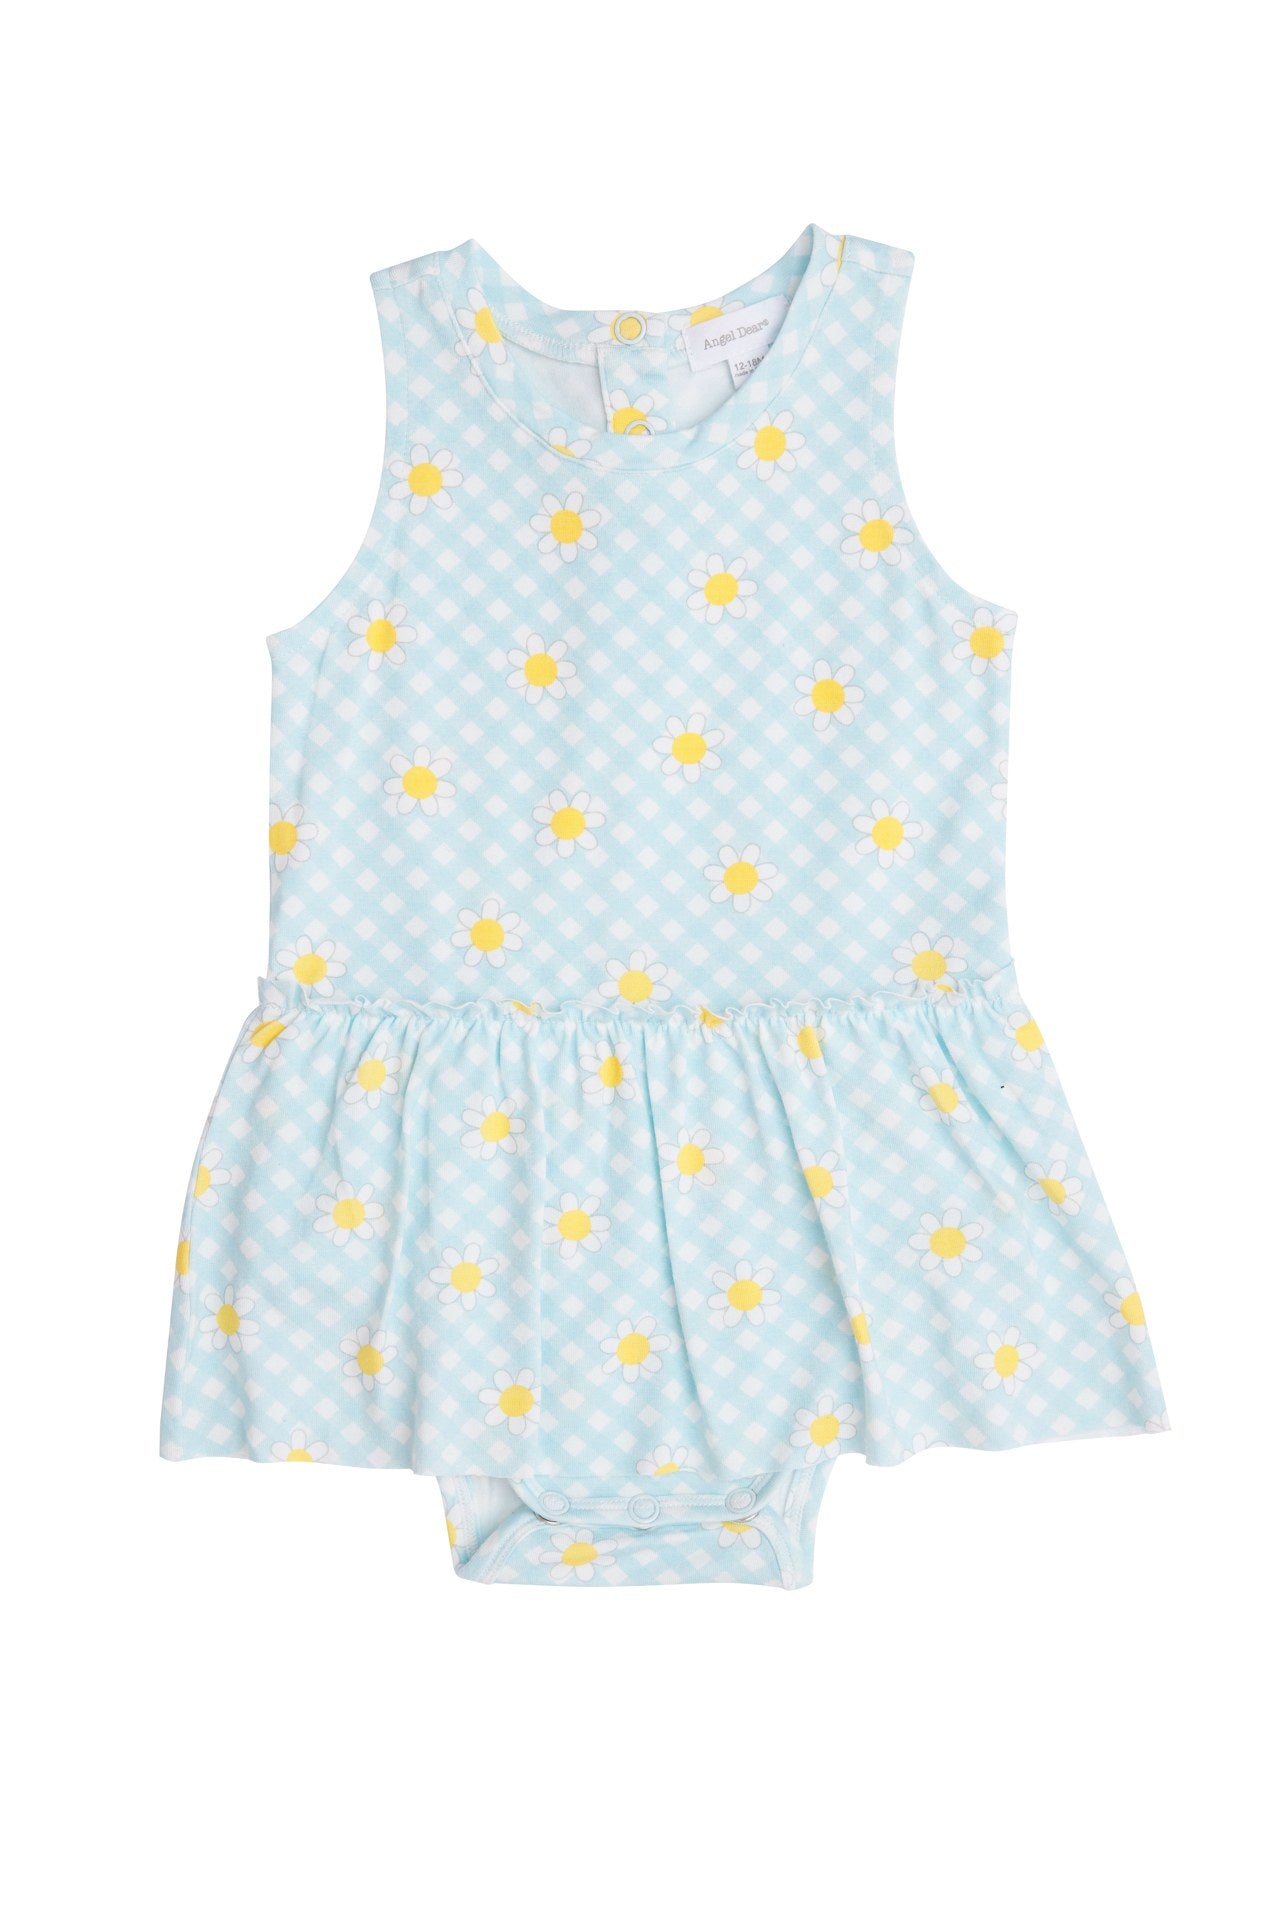 Gingham Daisy Bodysuit with Skirt